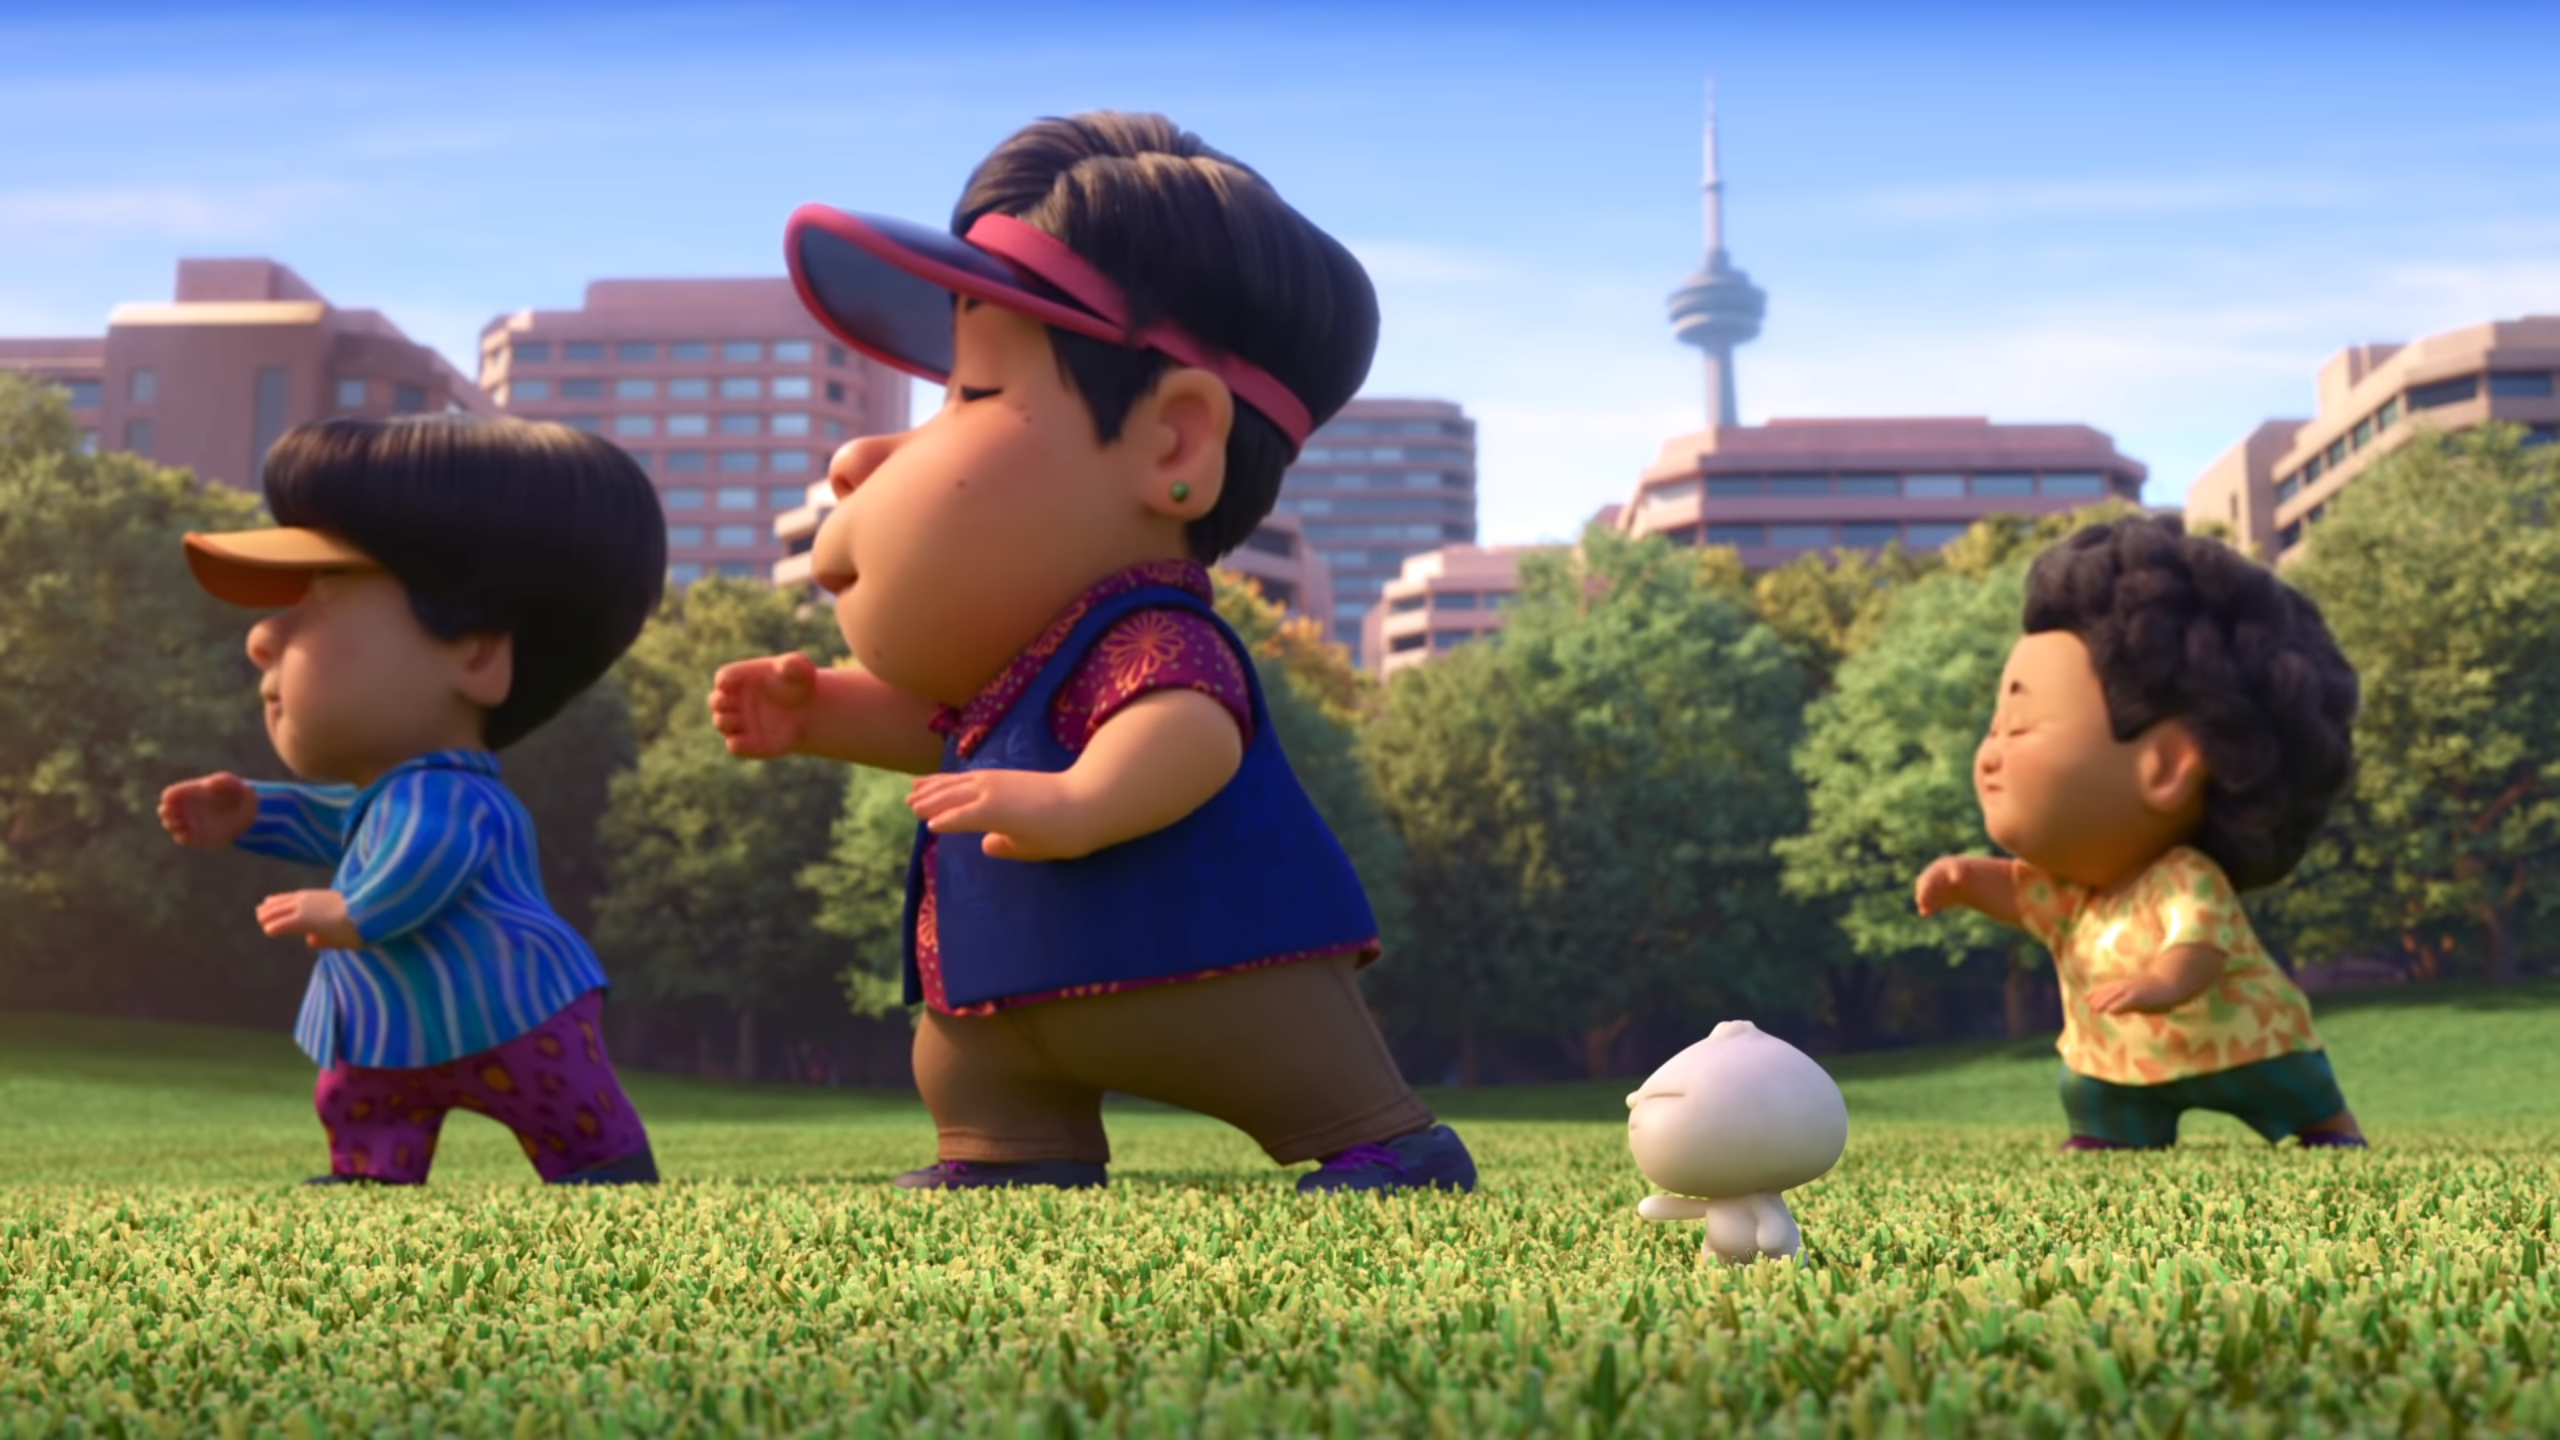 Pixar's Stunning, Heartwarming Short Bao Is Now Available To Watch Online